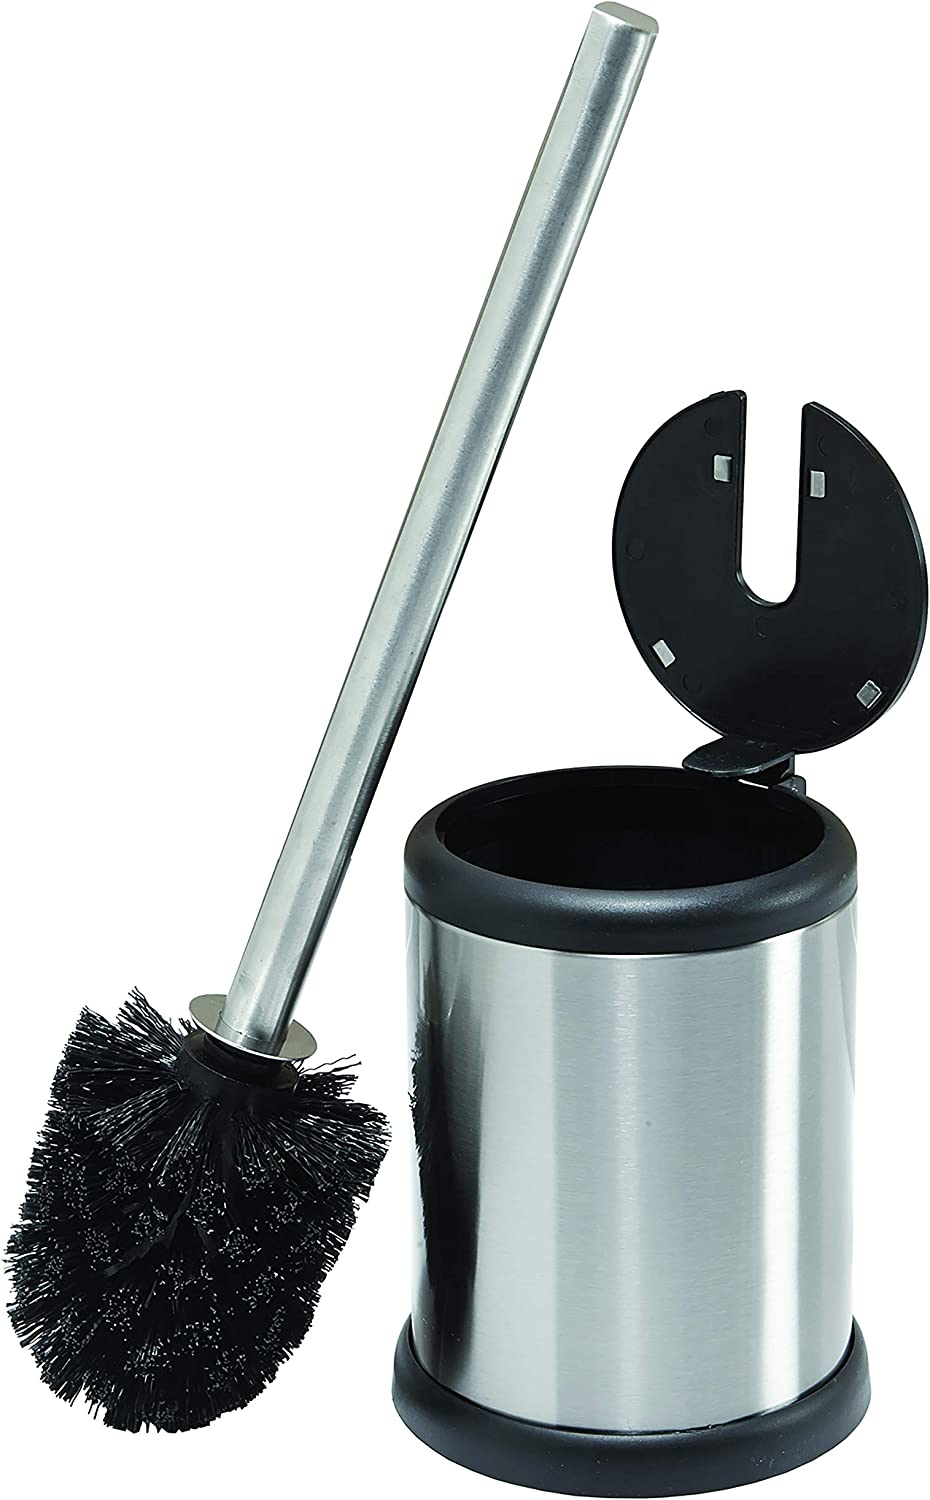 Bath Bliss Toilet Bowl Brush And Holder With Self Closing Lid Space Saver Deep Cleaning Finger Print Proof Finish Hygienic 4 5 Round By 14 75 High Stainless Steel Home Kitchen